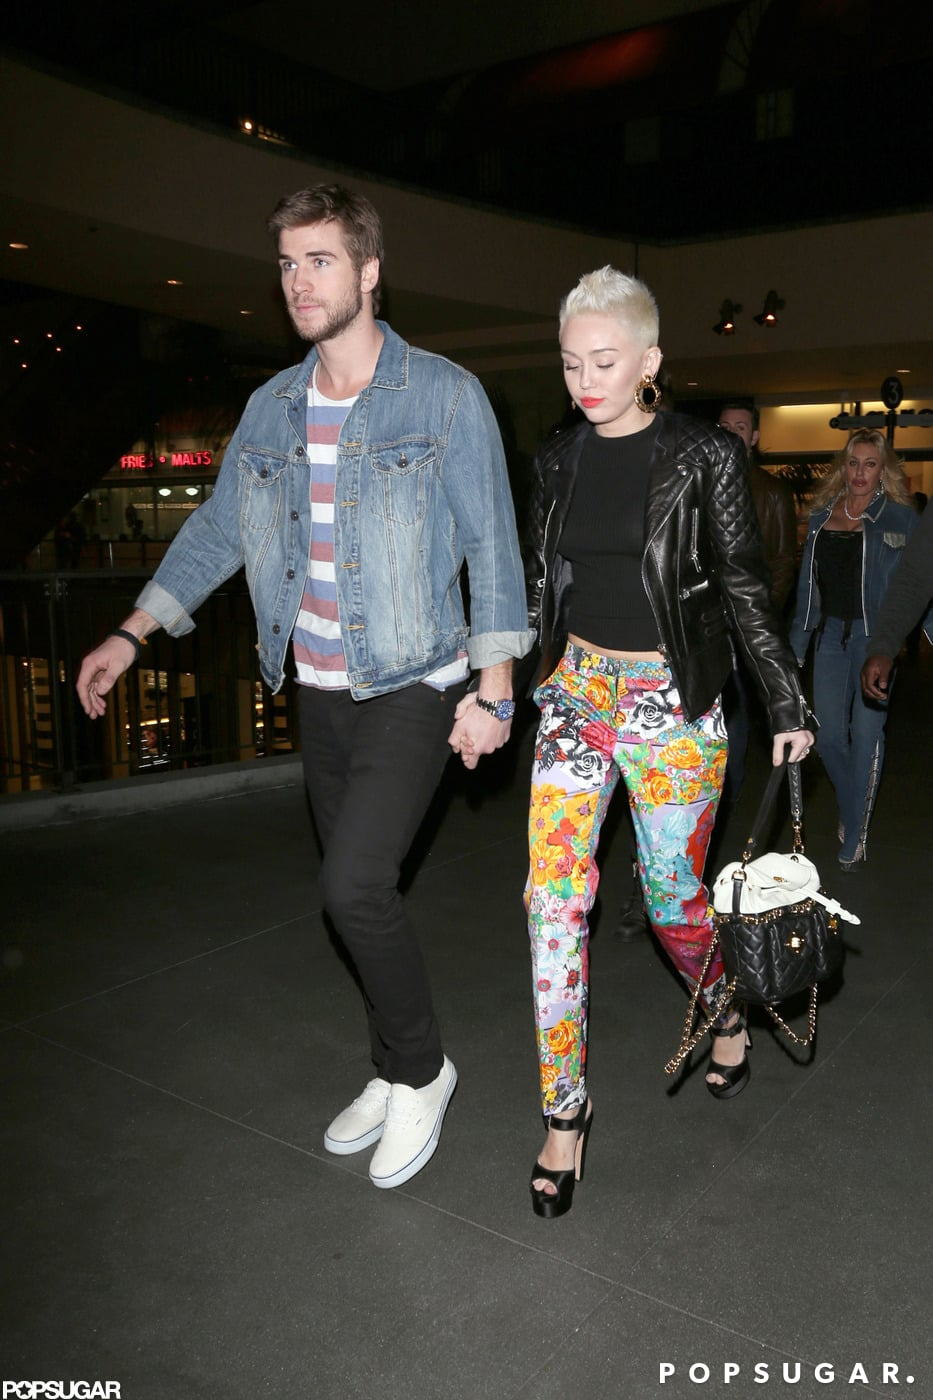 Miley Cyrus and Liam Hemsworth walked to dinner in LA.